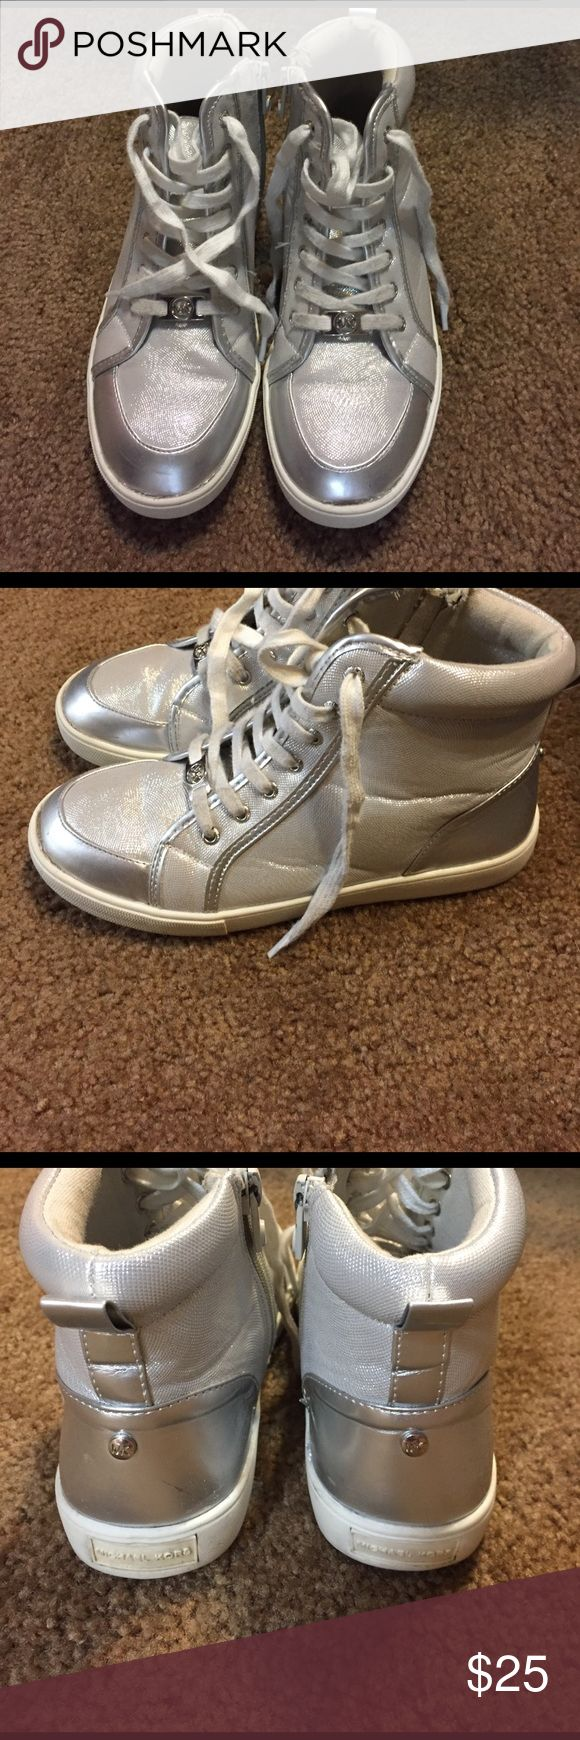 Micheal Kors girls high top sneakers size 3 Michael Kors girls platinum high top sneakers size 3, some light scratches,  Worn about three or four times, I paid about $89. Ask questions thank you Michael Kors Shoes Sneakers